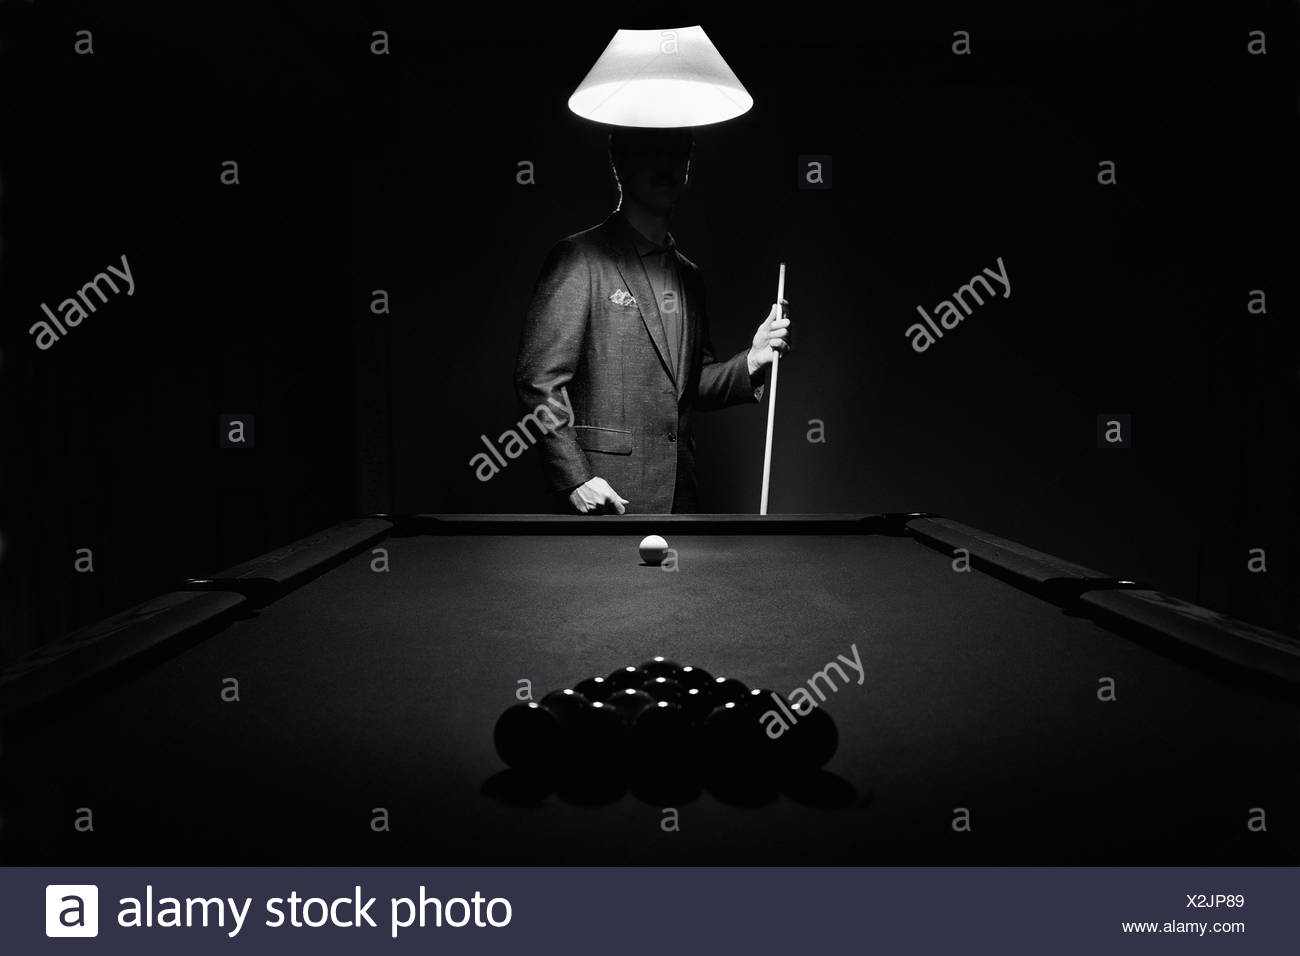 Mystery Pool Player Behind Rack Of Billiard Balls; Edmonton, Alberta, Canada - Stock Image